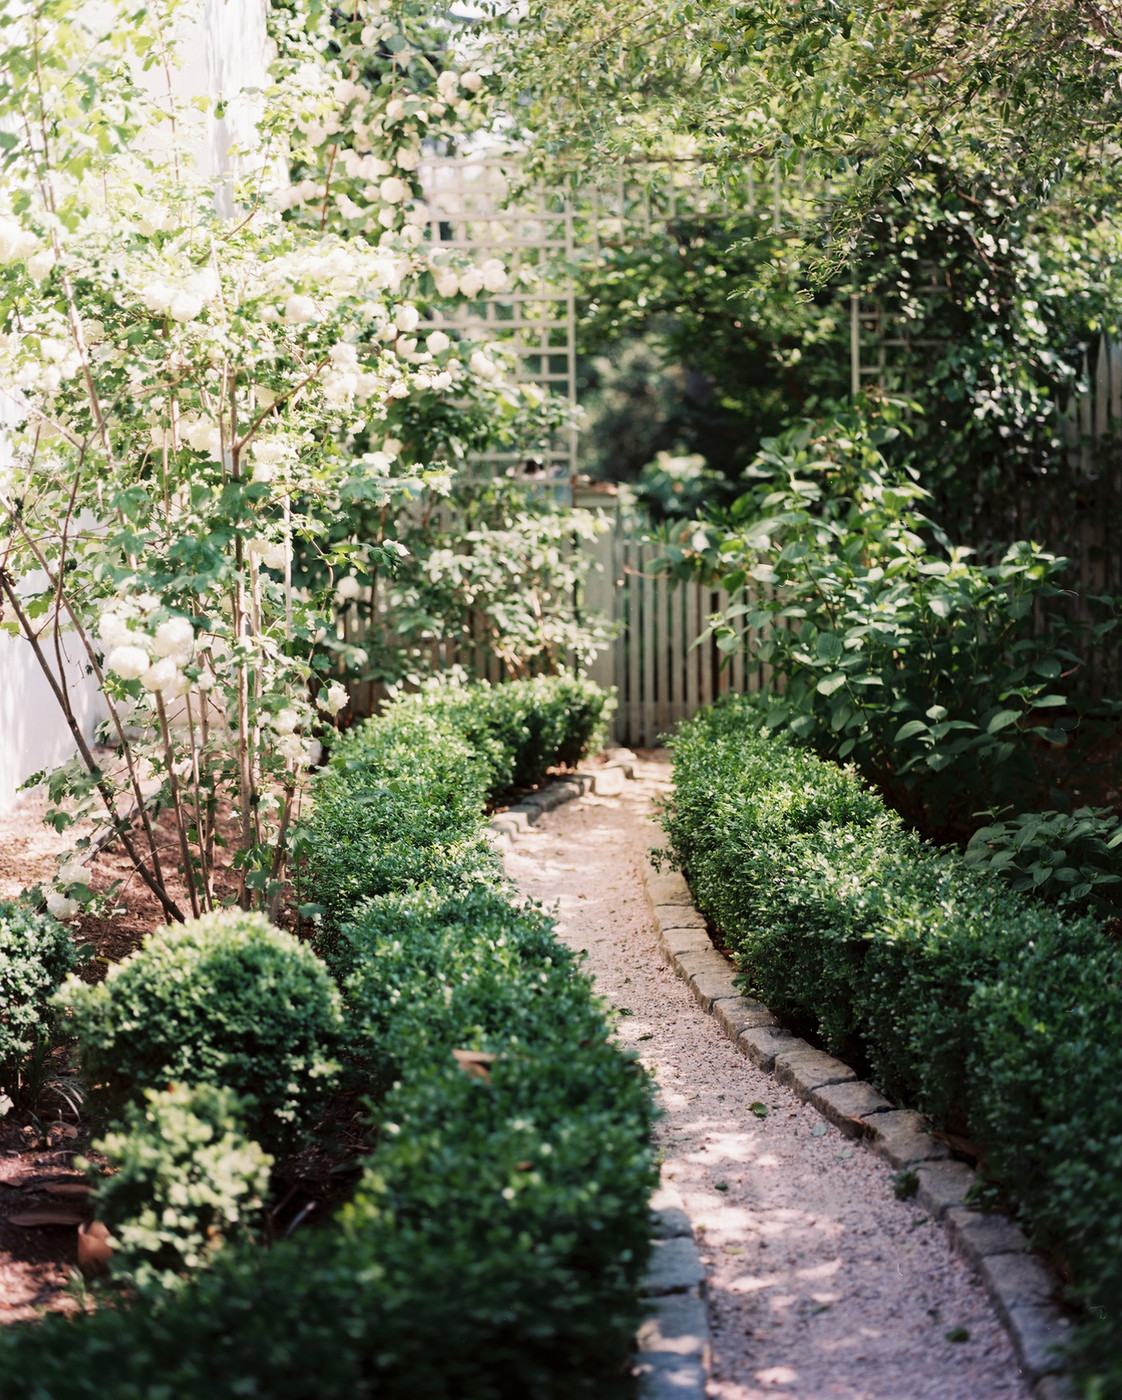 Crushed Gravel Landscaping : Crushed stone path photos design ideas remodel and